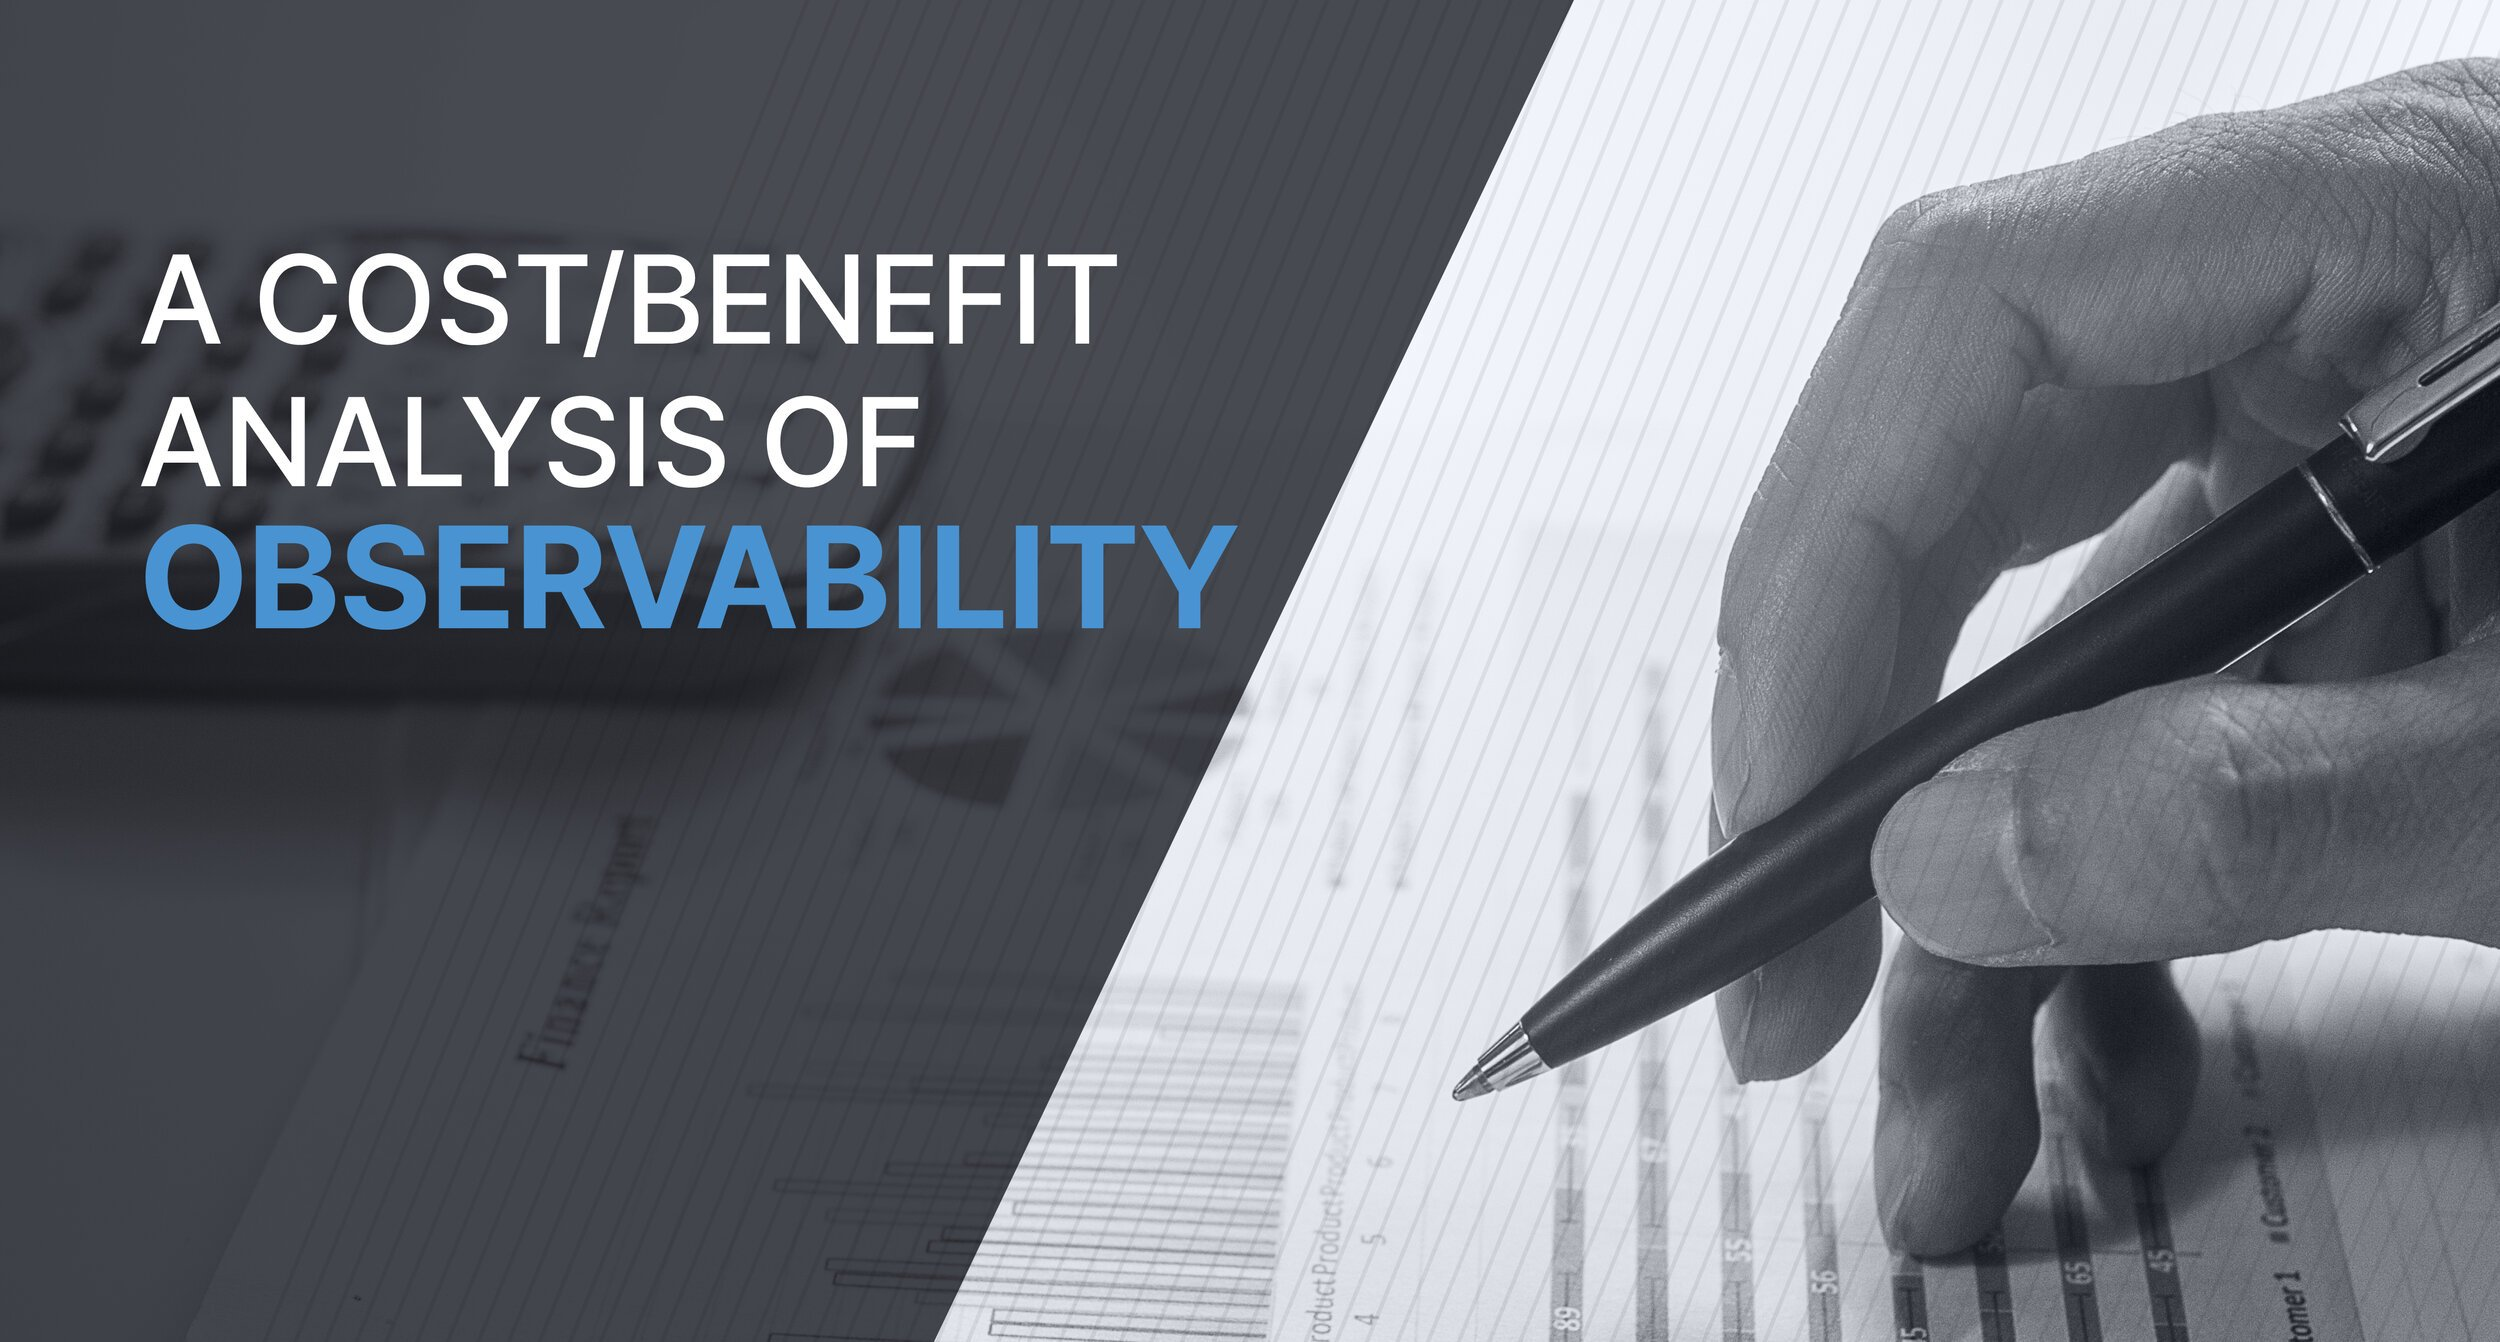 A Cost/Benefit Analysis of Observability